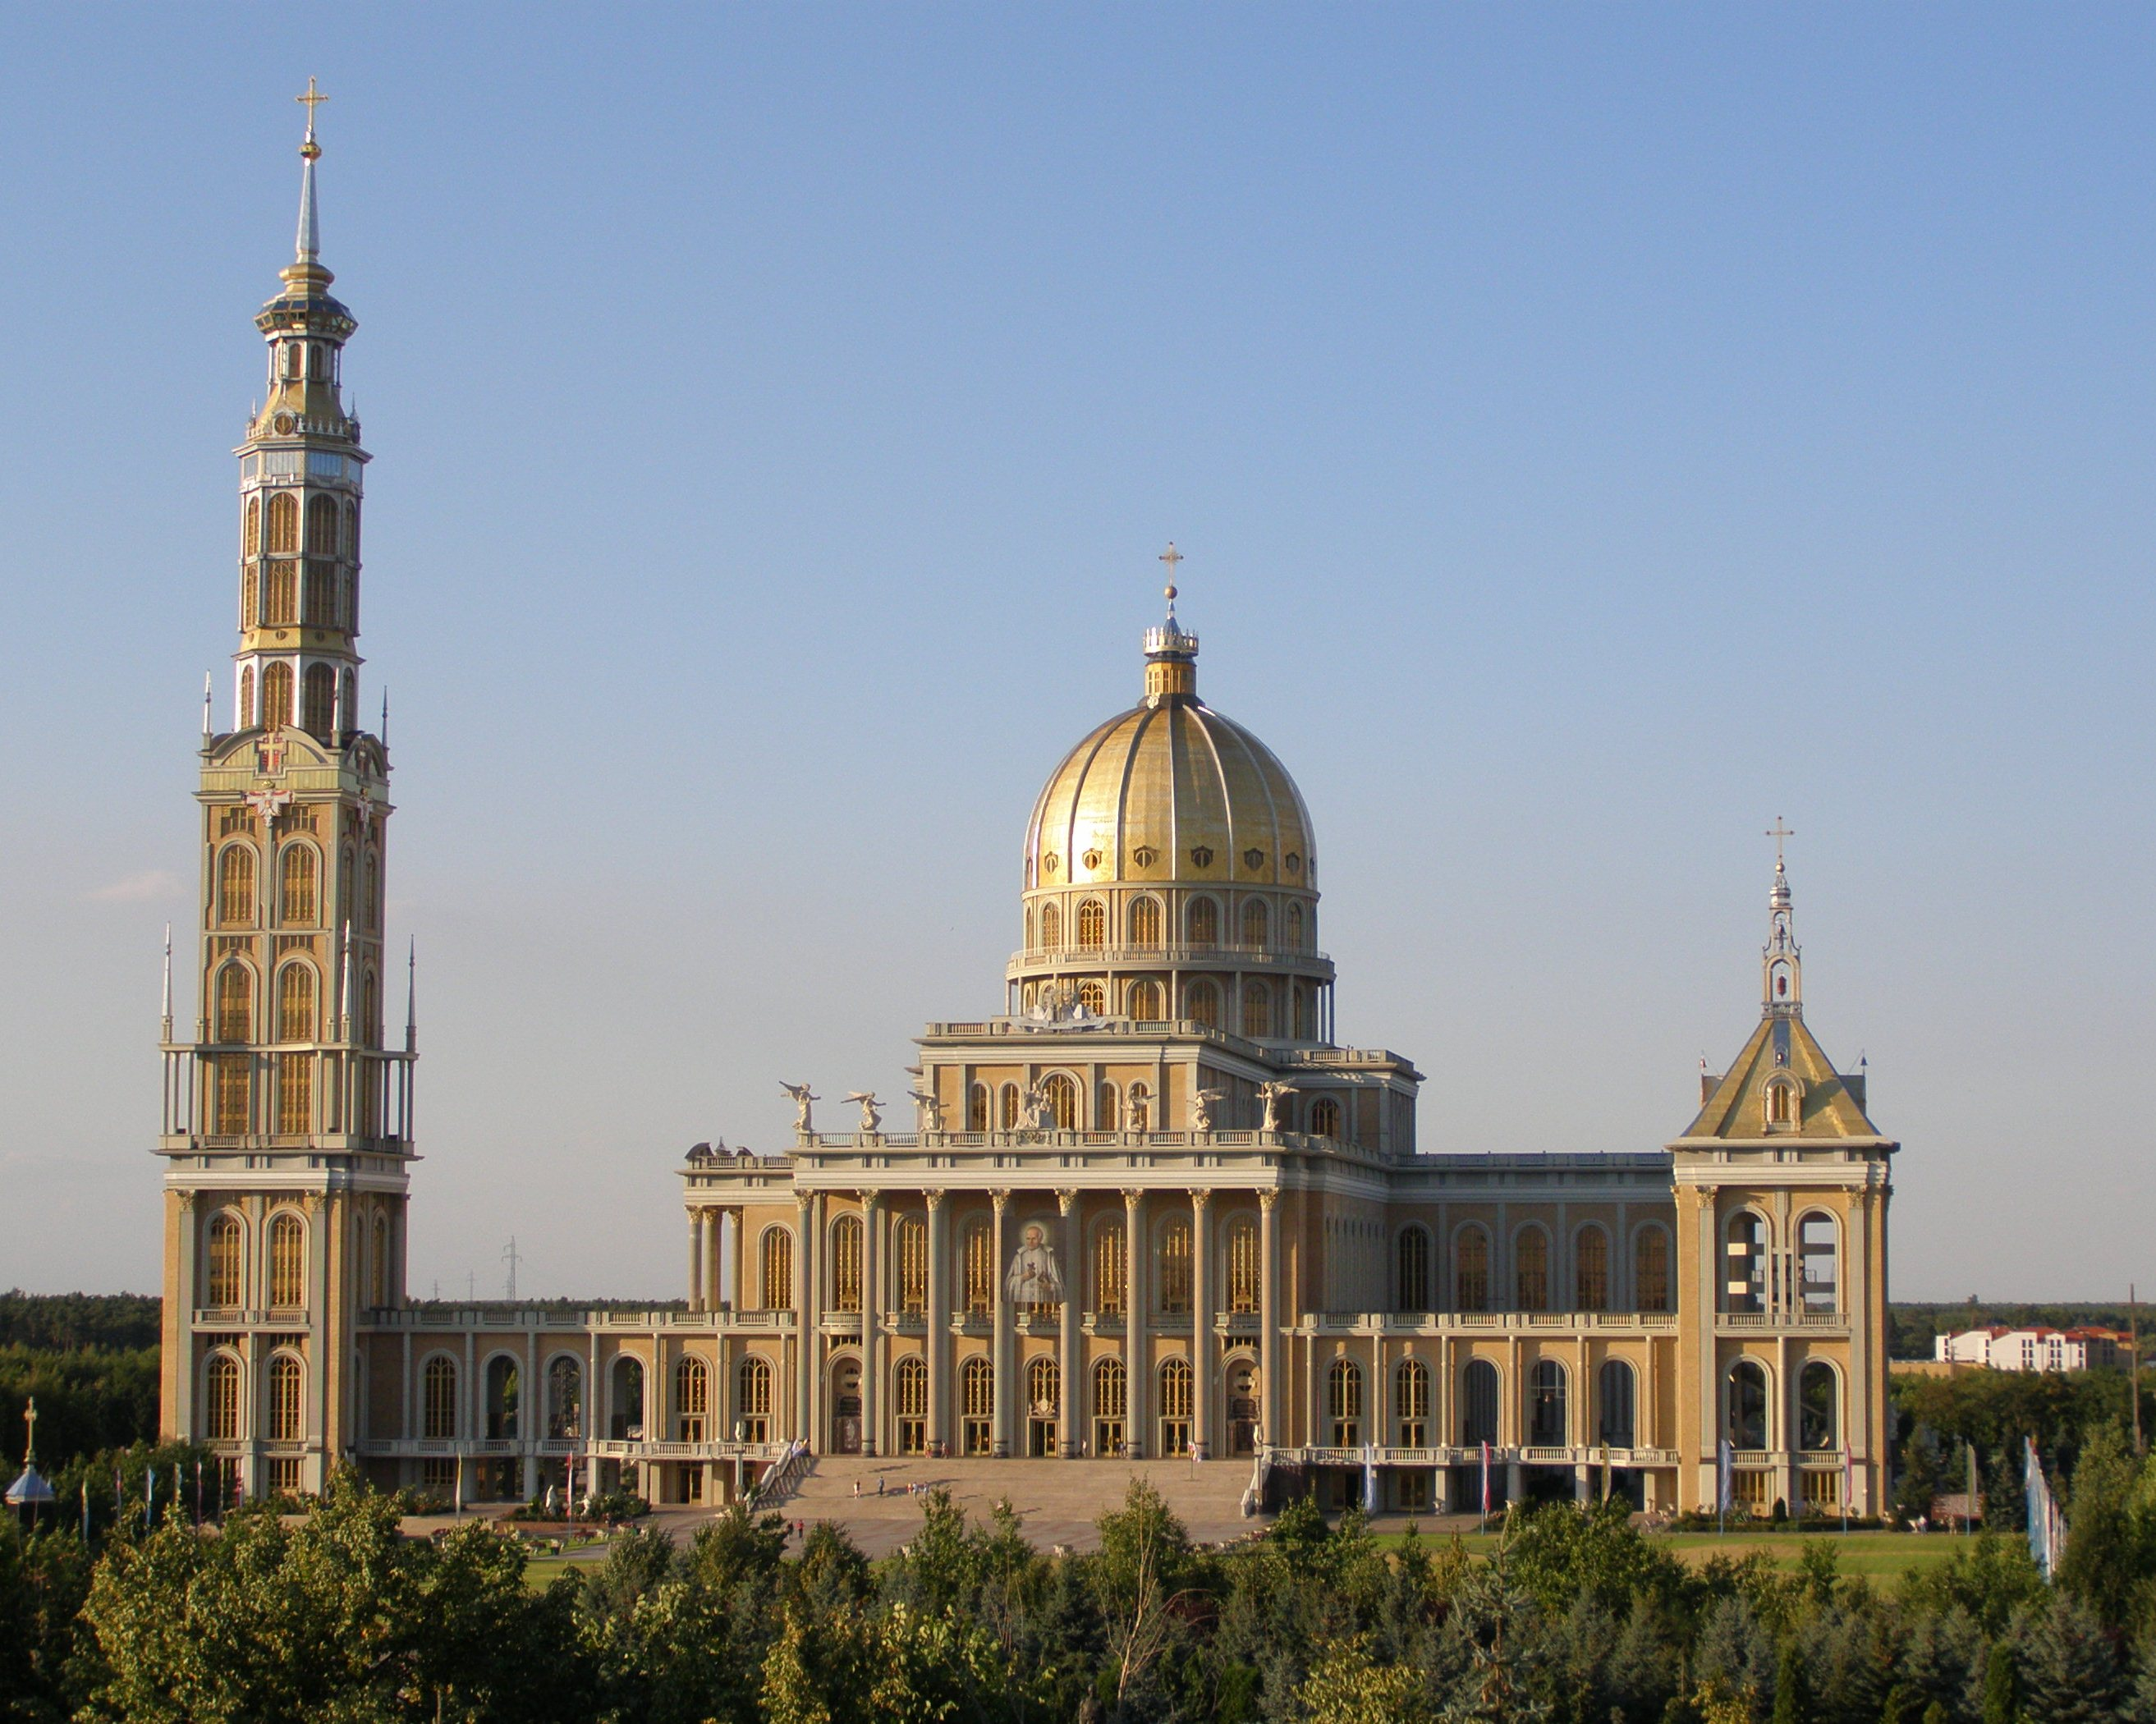 third largest church in the world